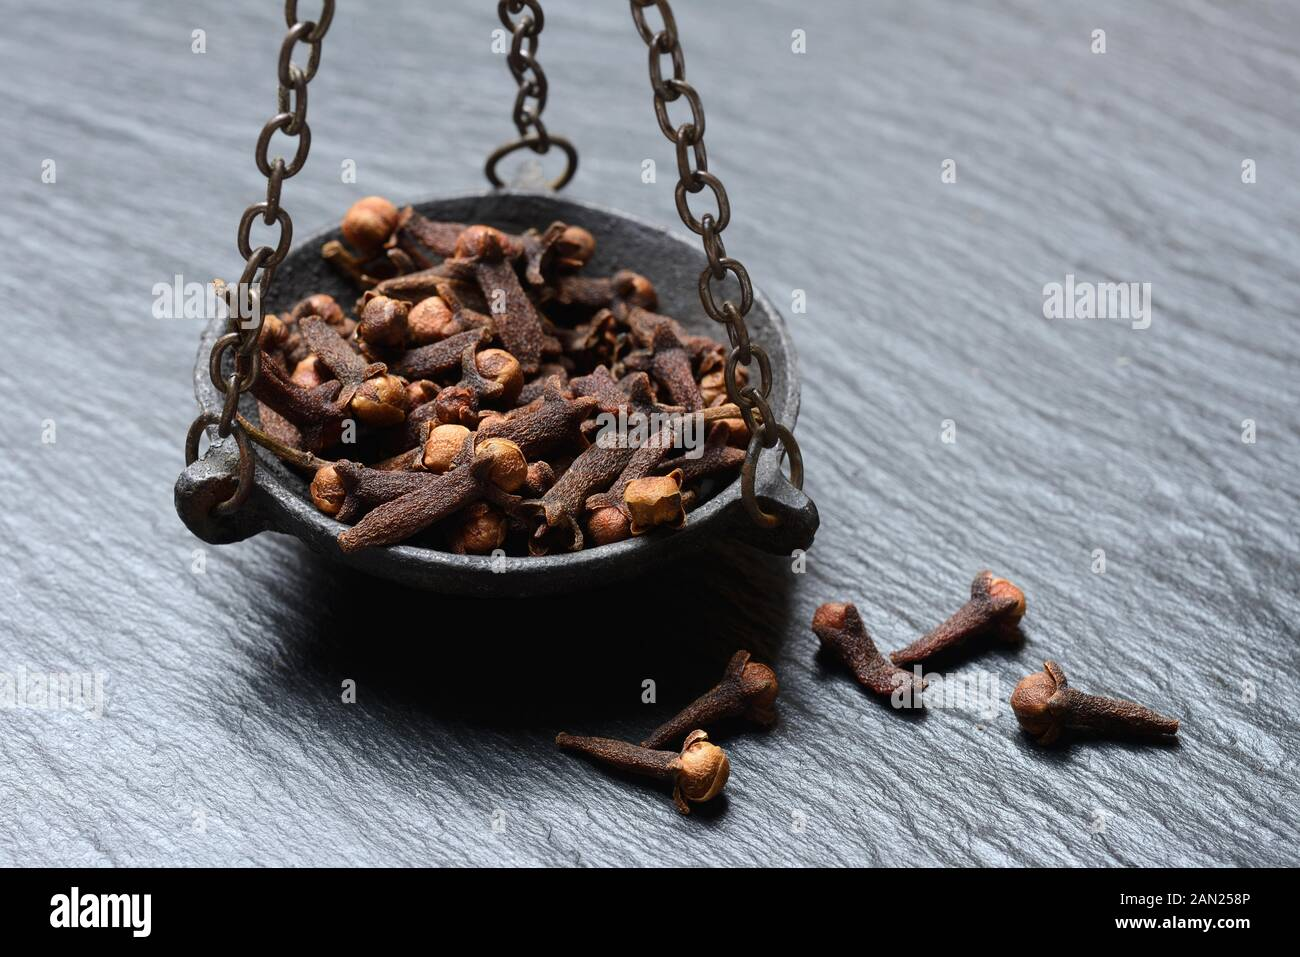 Cloves in a weighing pan, Germany Stock Photo